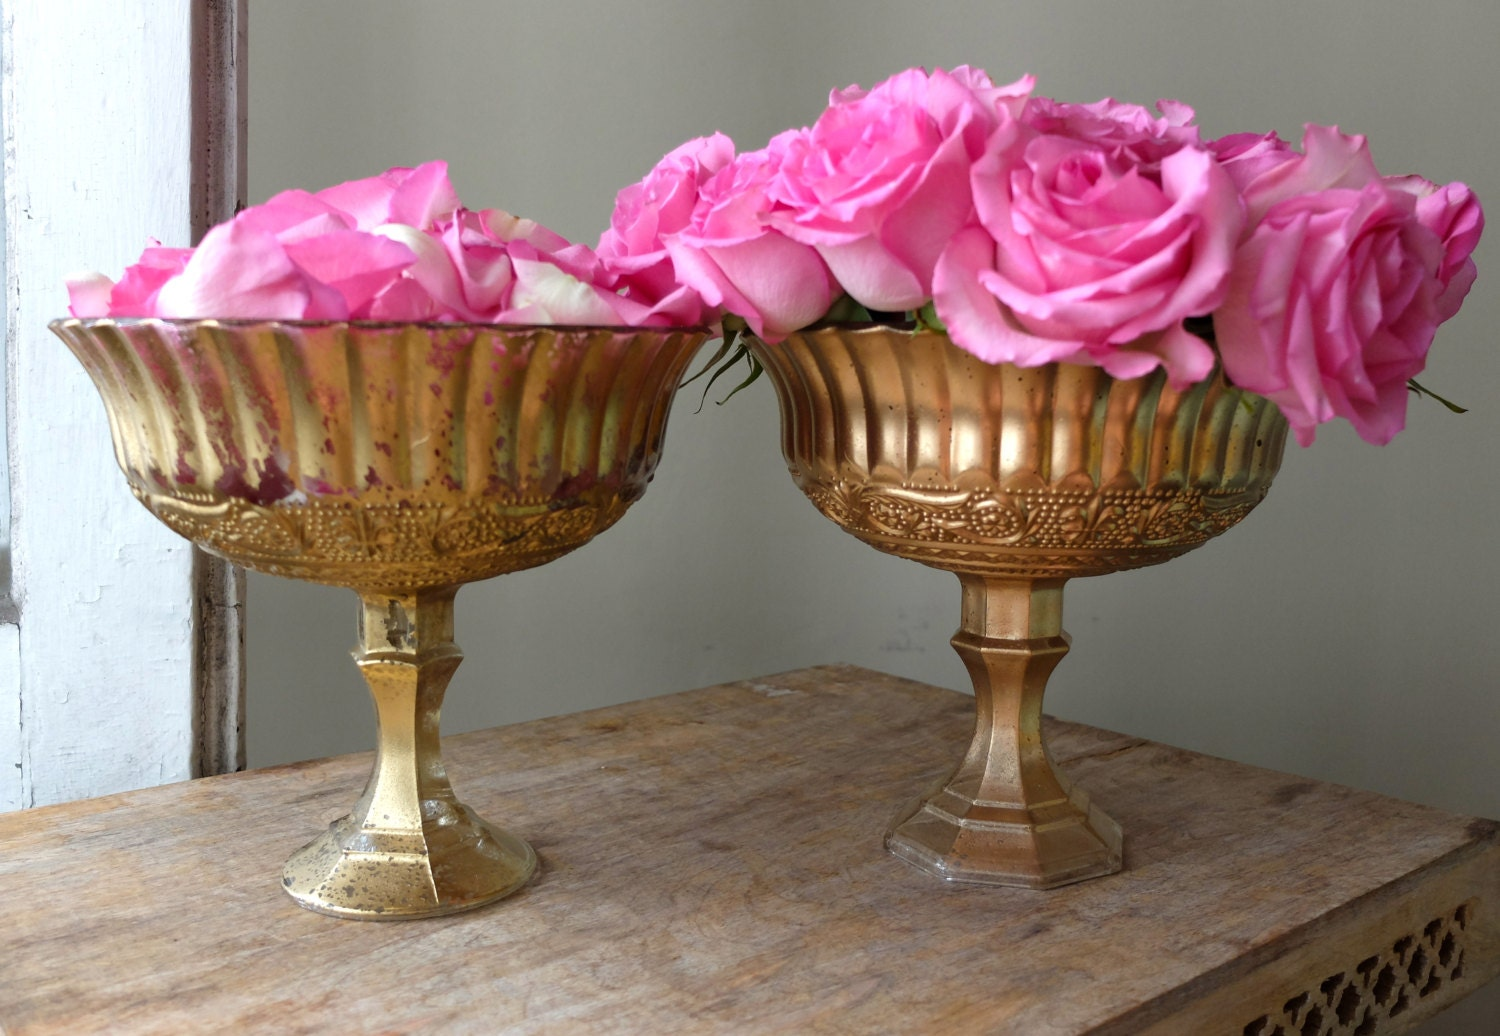 Pedestal vase wholesale images vases design picture beautiful ornate glass pedestal vases set distressed yellow zoom reviewsmspy floridaeventfo Image collections